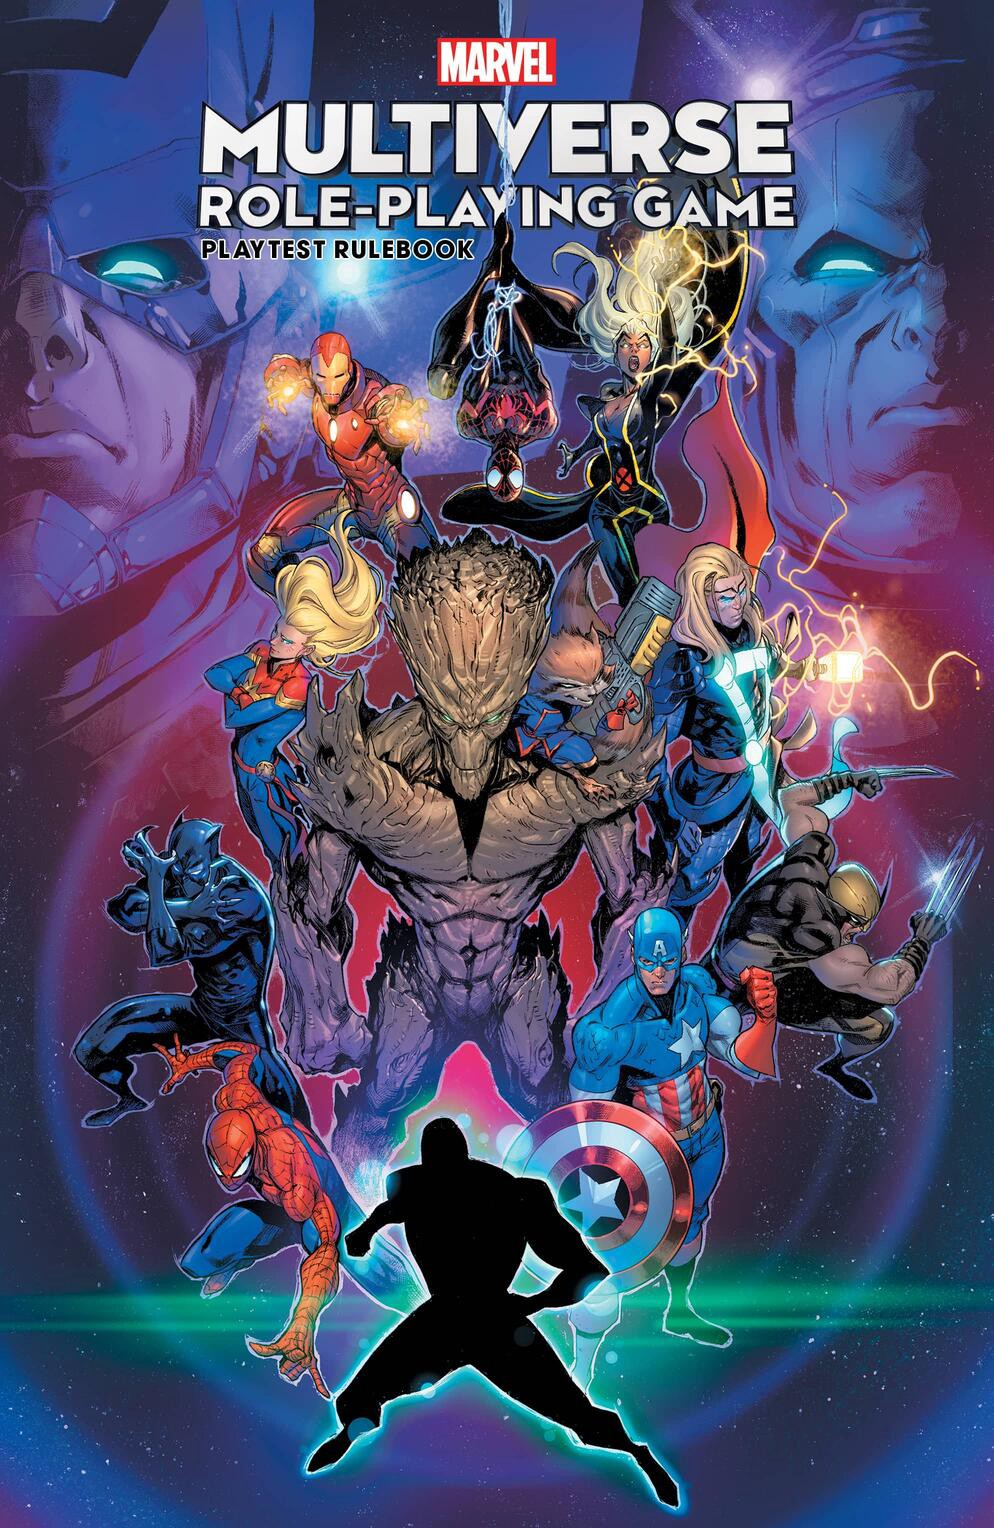 The cover of the Marvel Multiverse Role-playing Game Playtest Rulebook. The image shows, from top right to bottom left, Iron Man, Spider-Man (Miles Morales), Storm, Captain Marvel, Groot, Rocket, Thor, Black Panther, Wolverine, Captain America, Spider-Man (Peter Parker) and an unnamed character that looks like a void to be filled in. It might represent the original character the player can introduce to the Marvel universe. The faces of Galactus and Kang the Conqueror are in the background.